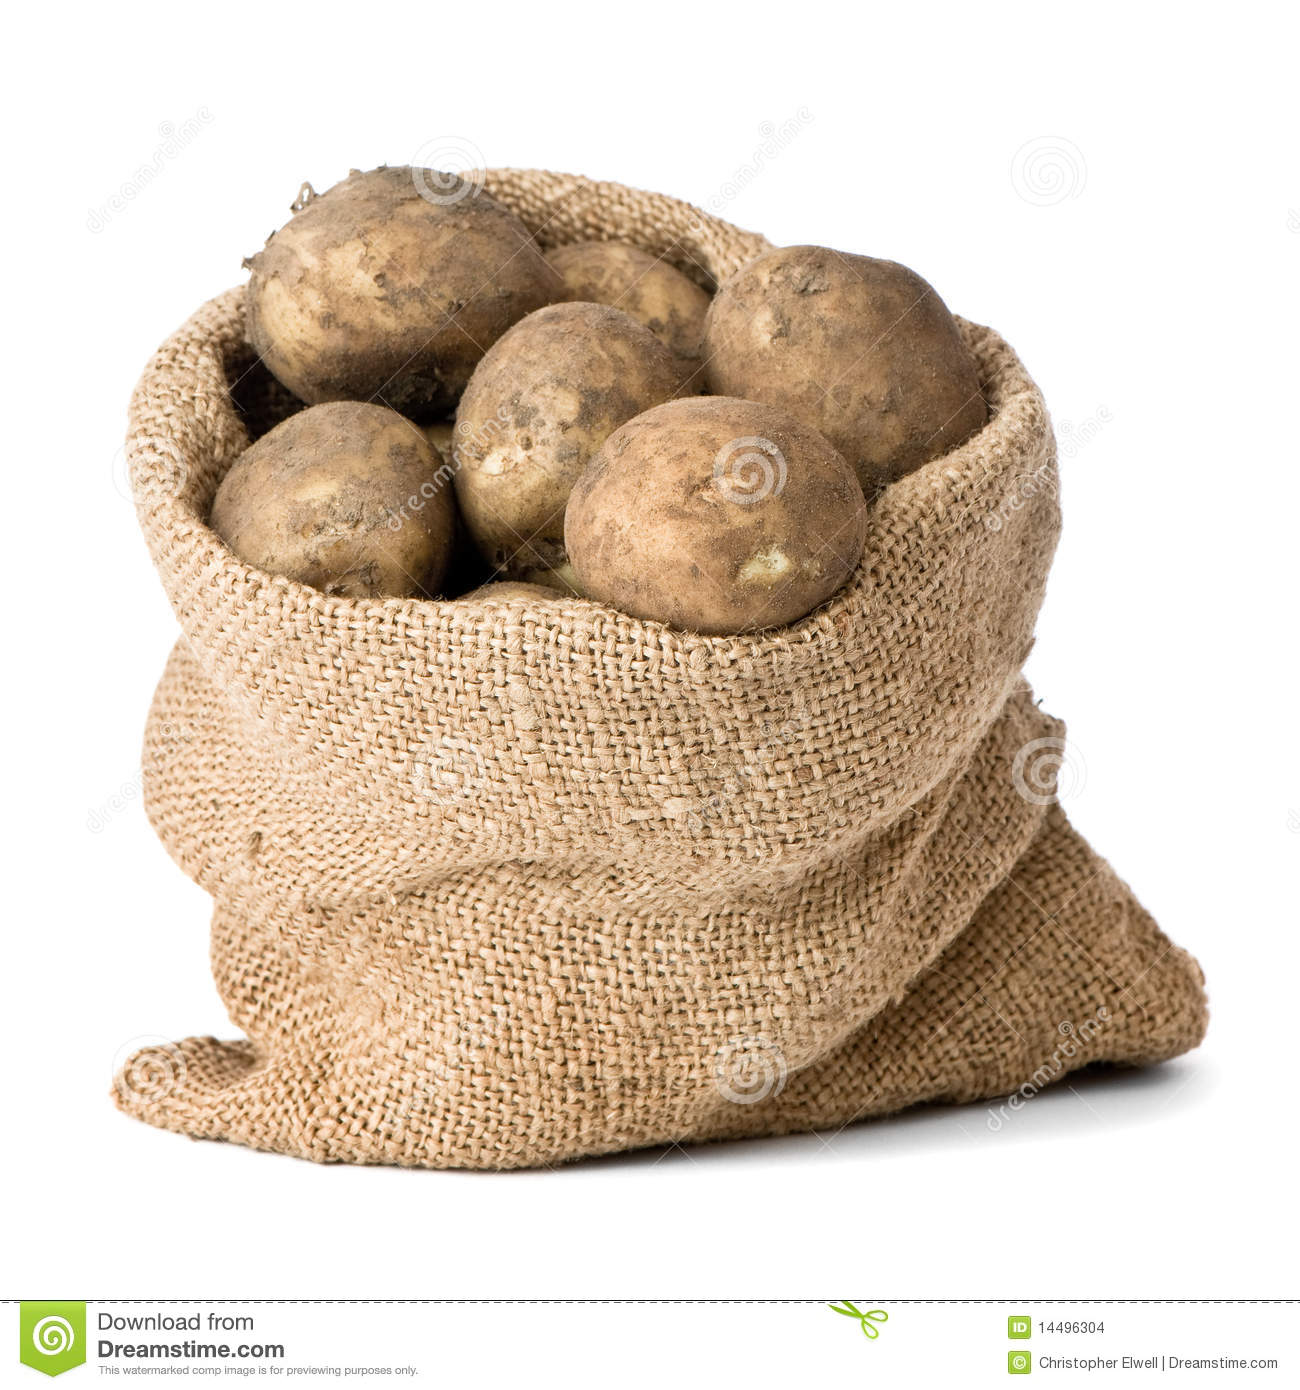 Burlap sack of freshly dug new potatoes on white background.